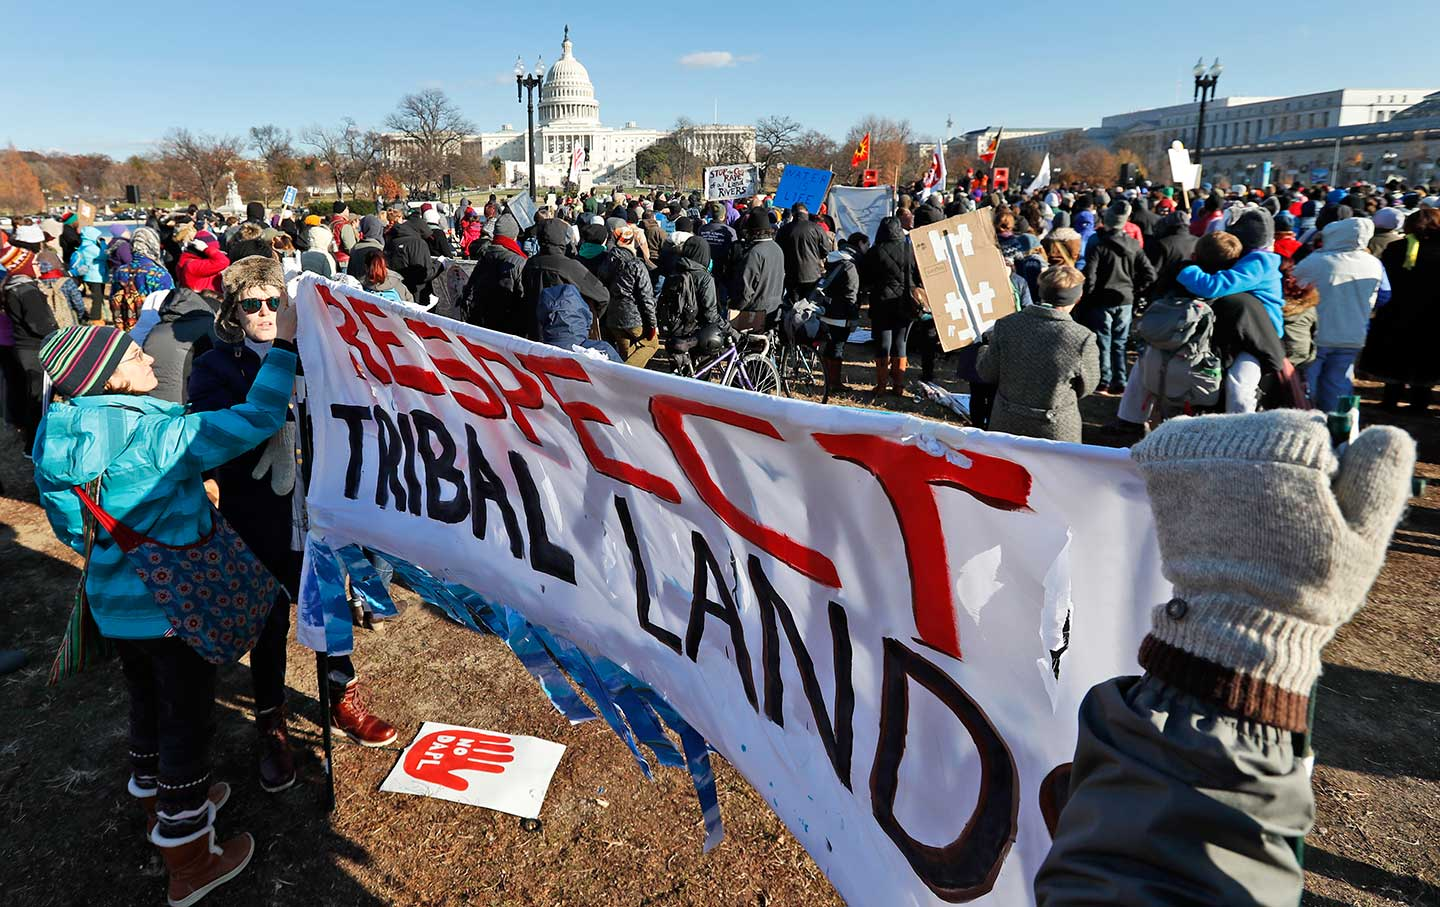 Demonstrators gather on Capitol Hill in Washington, Saturday, Dec. 10, 2016, to protest the Dakota Access oil pipeline.